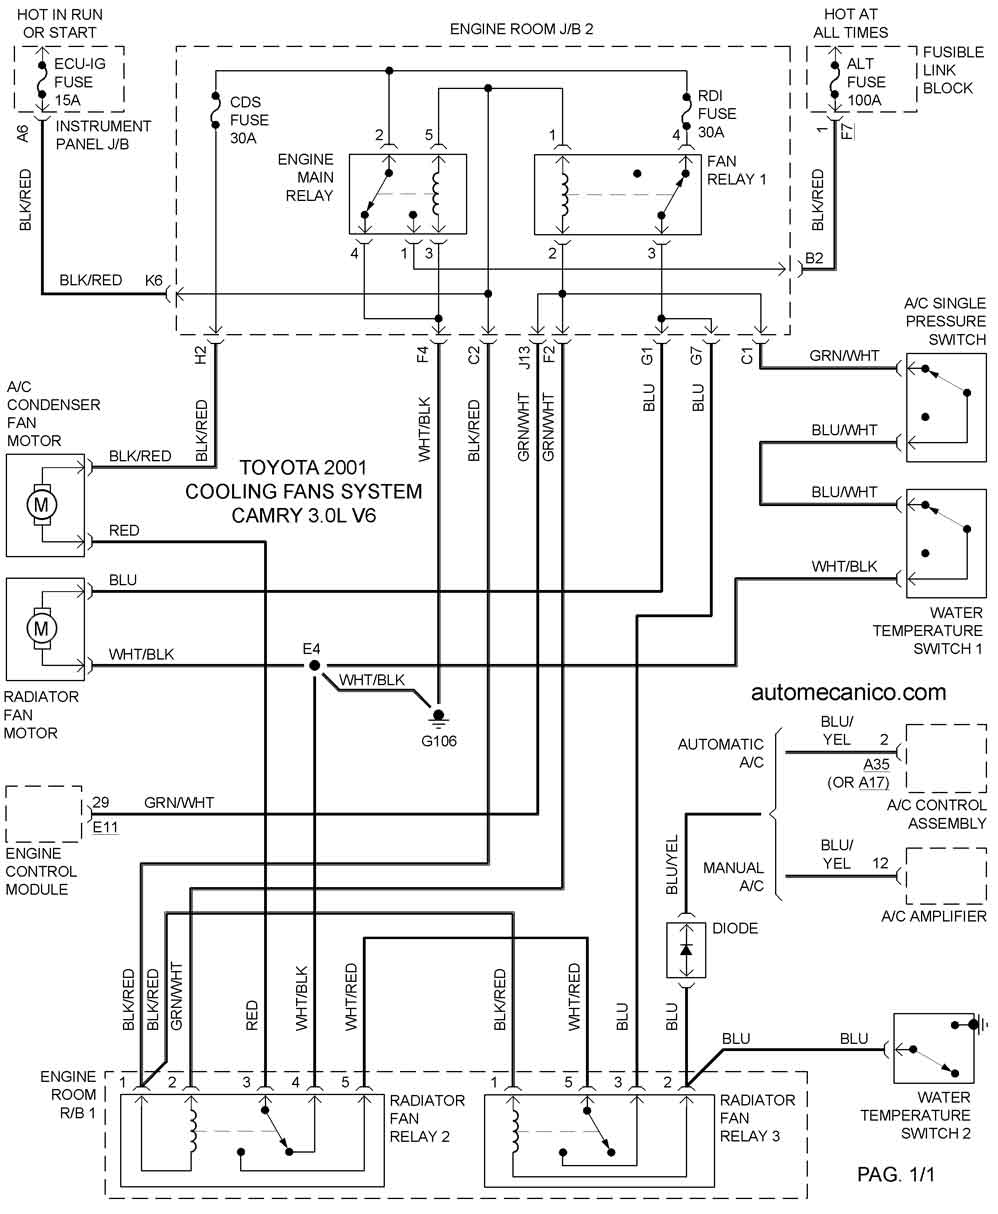 2003 Camry Diagrama Del Motor Auto Electrical Wiring Diagram Engine Toyota